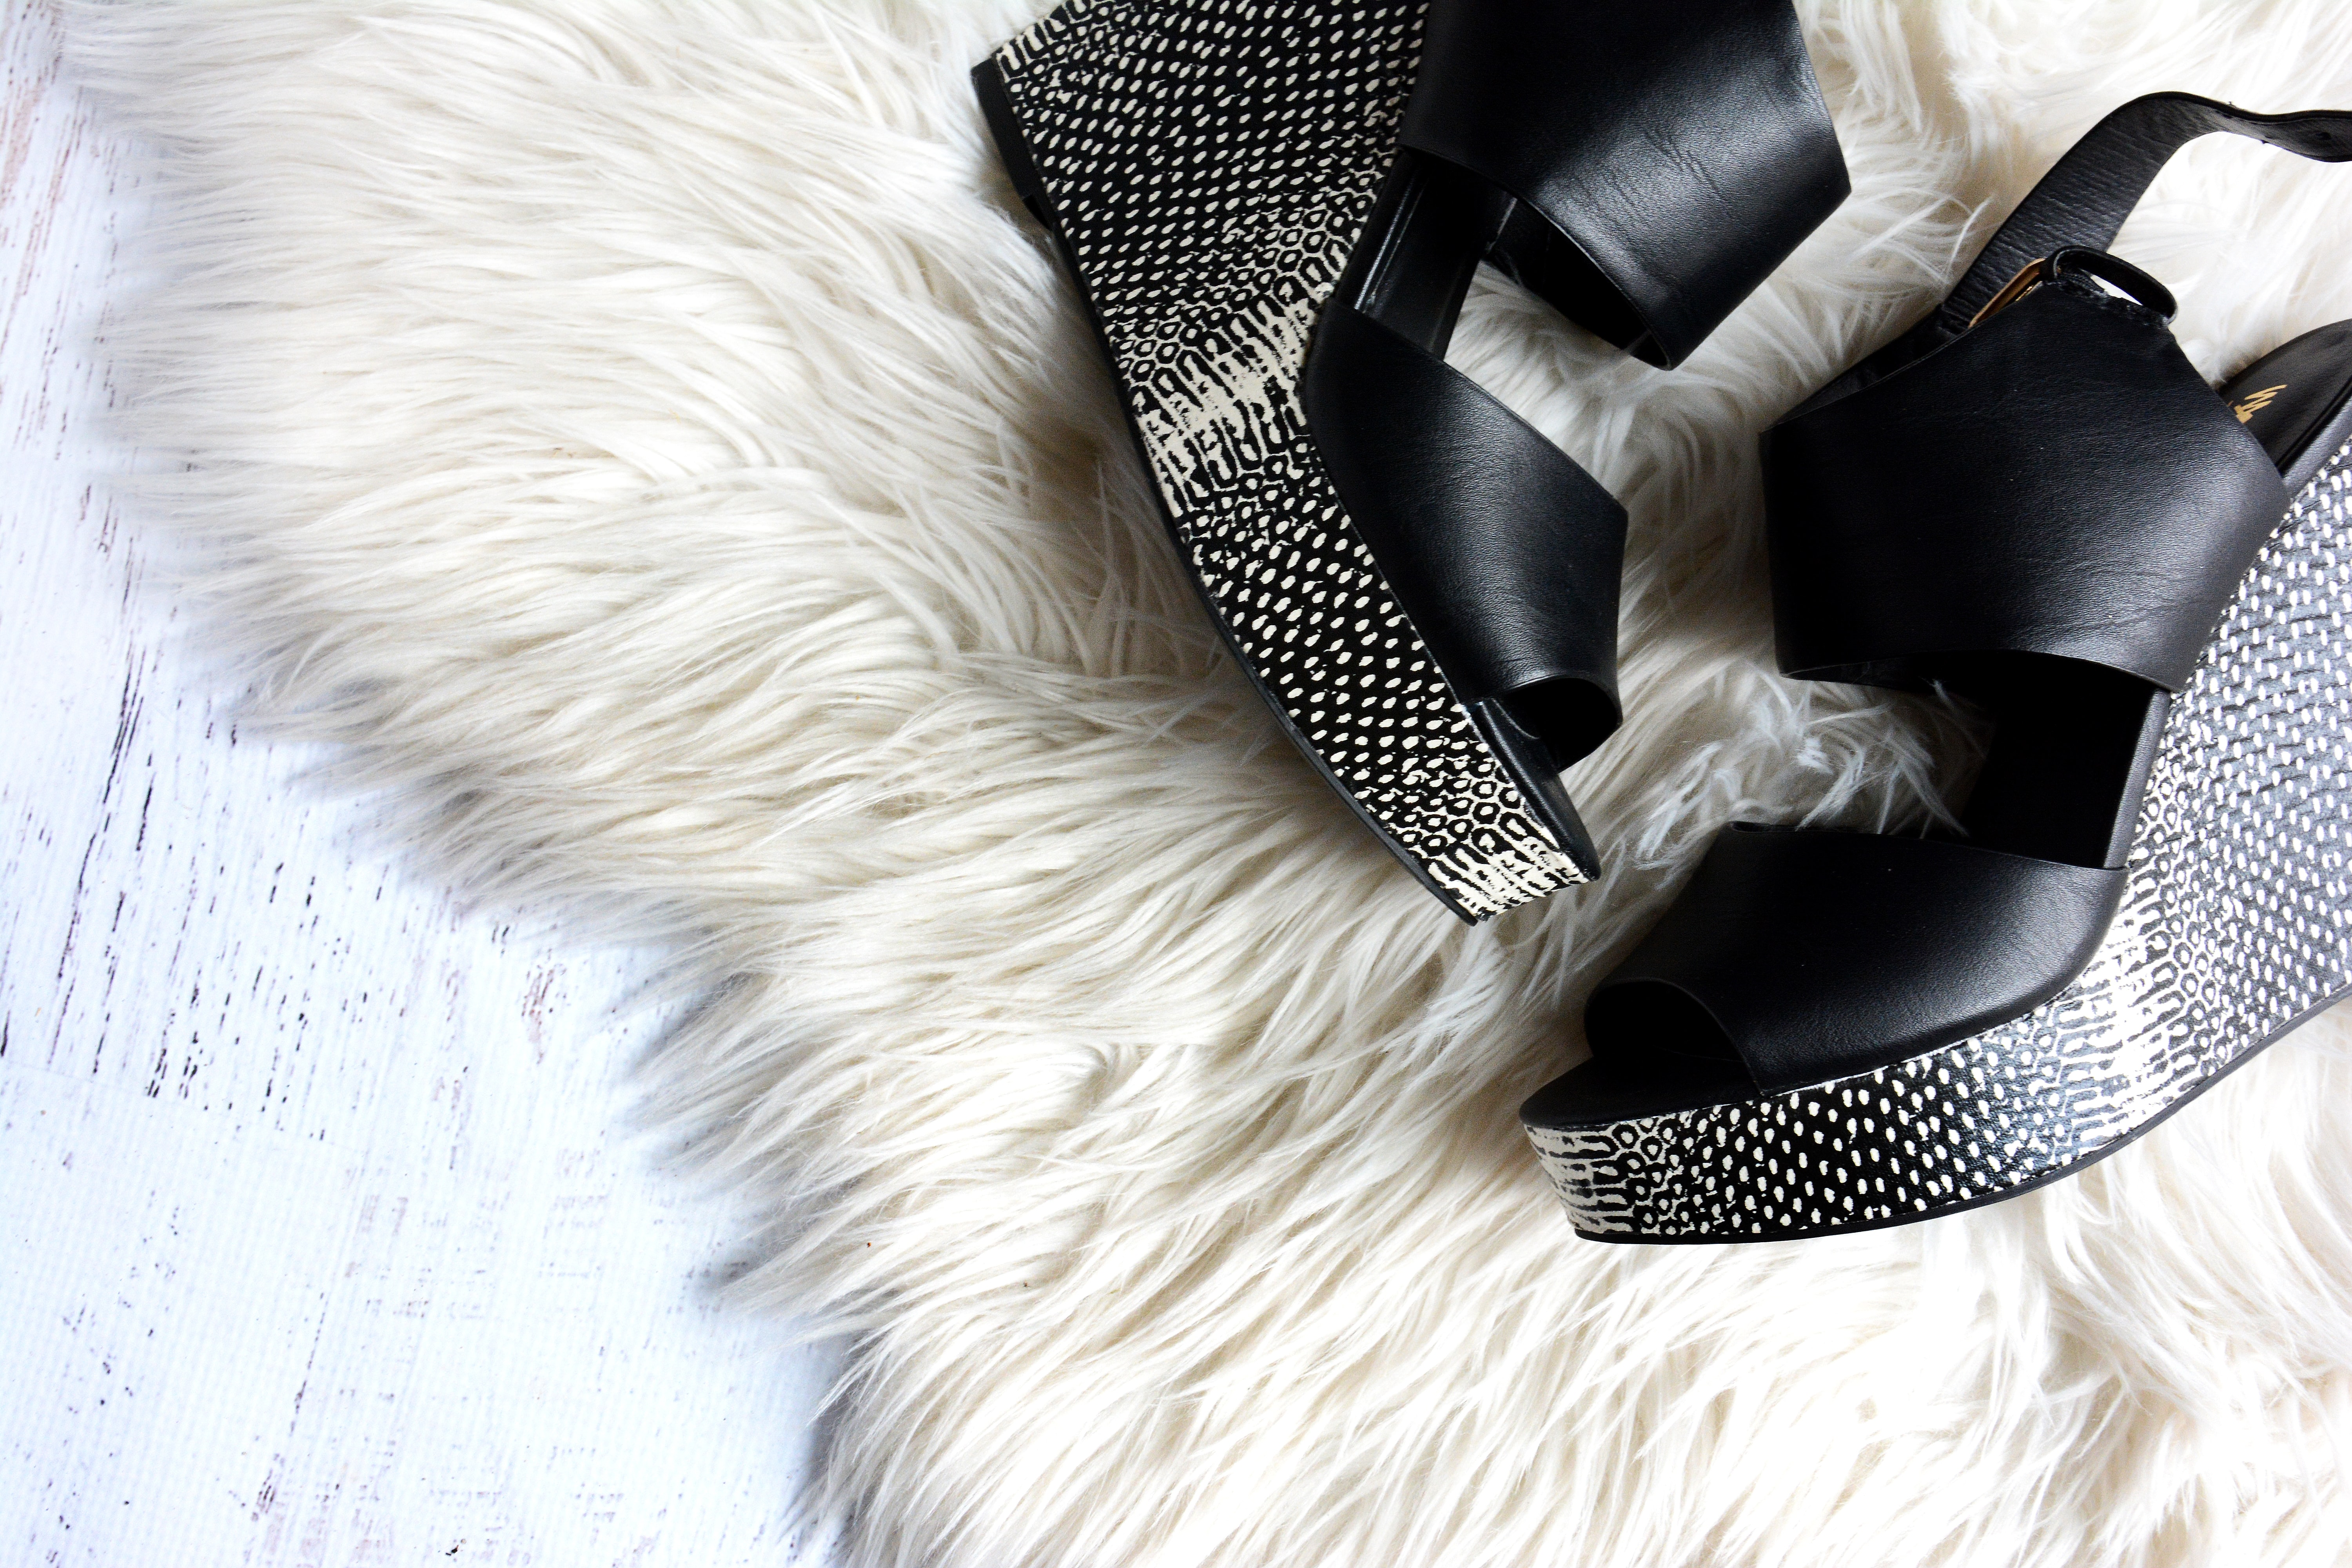 pair of women's black-and-gray wedges on white fur textile